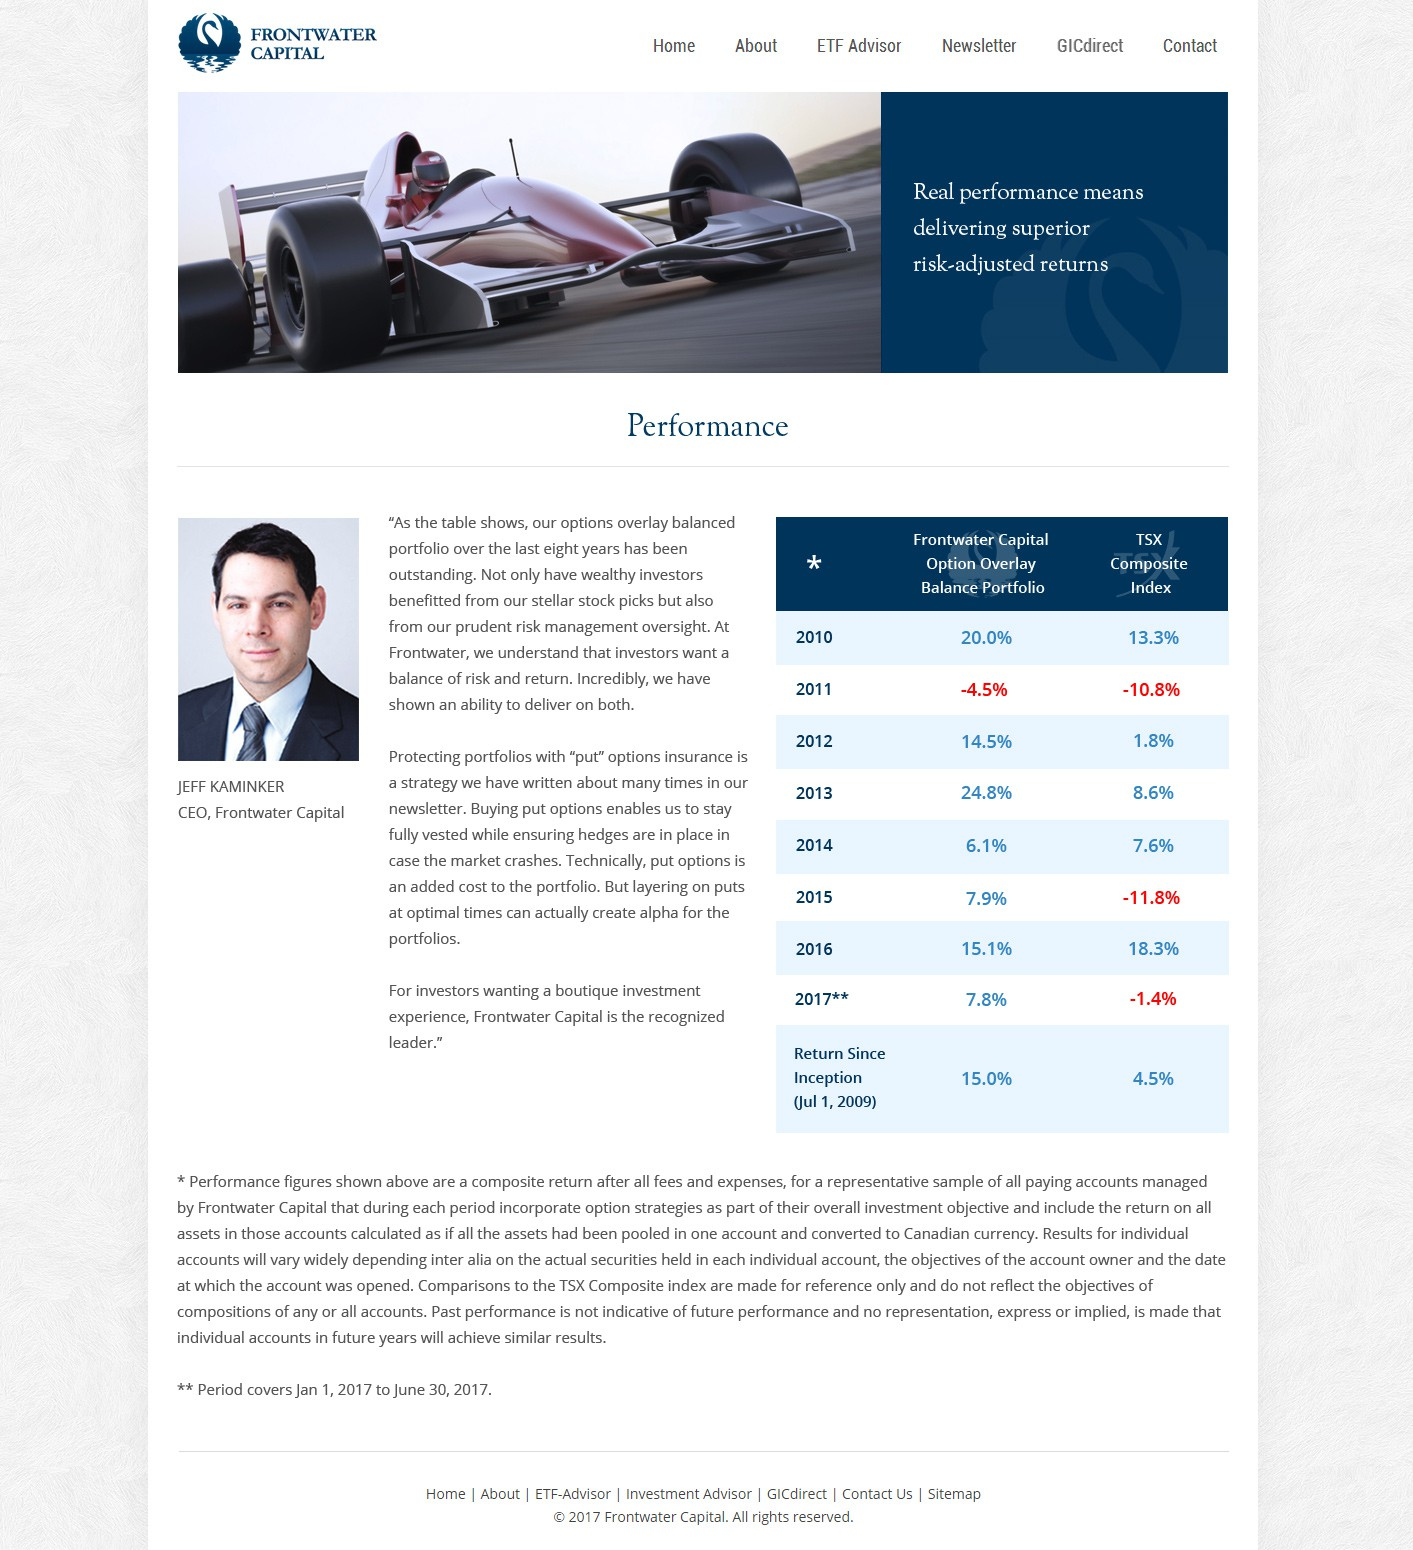 Frontwater Capital - Performance Page